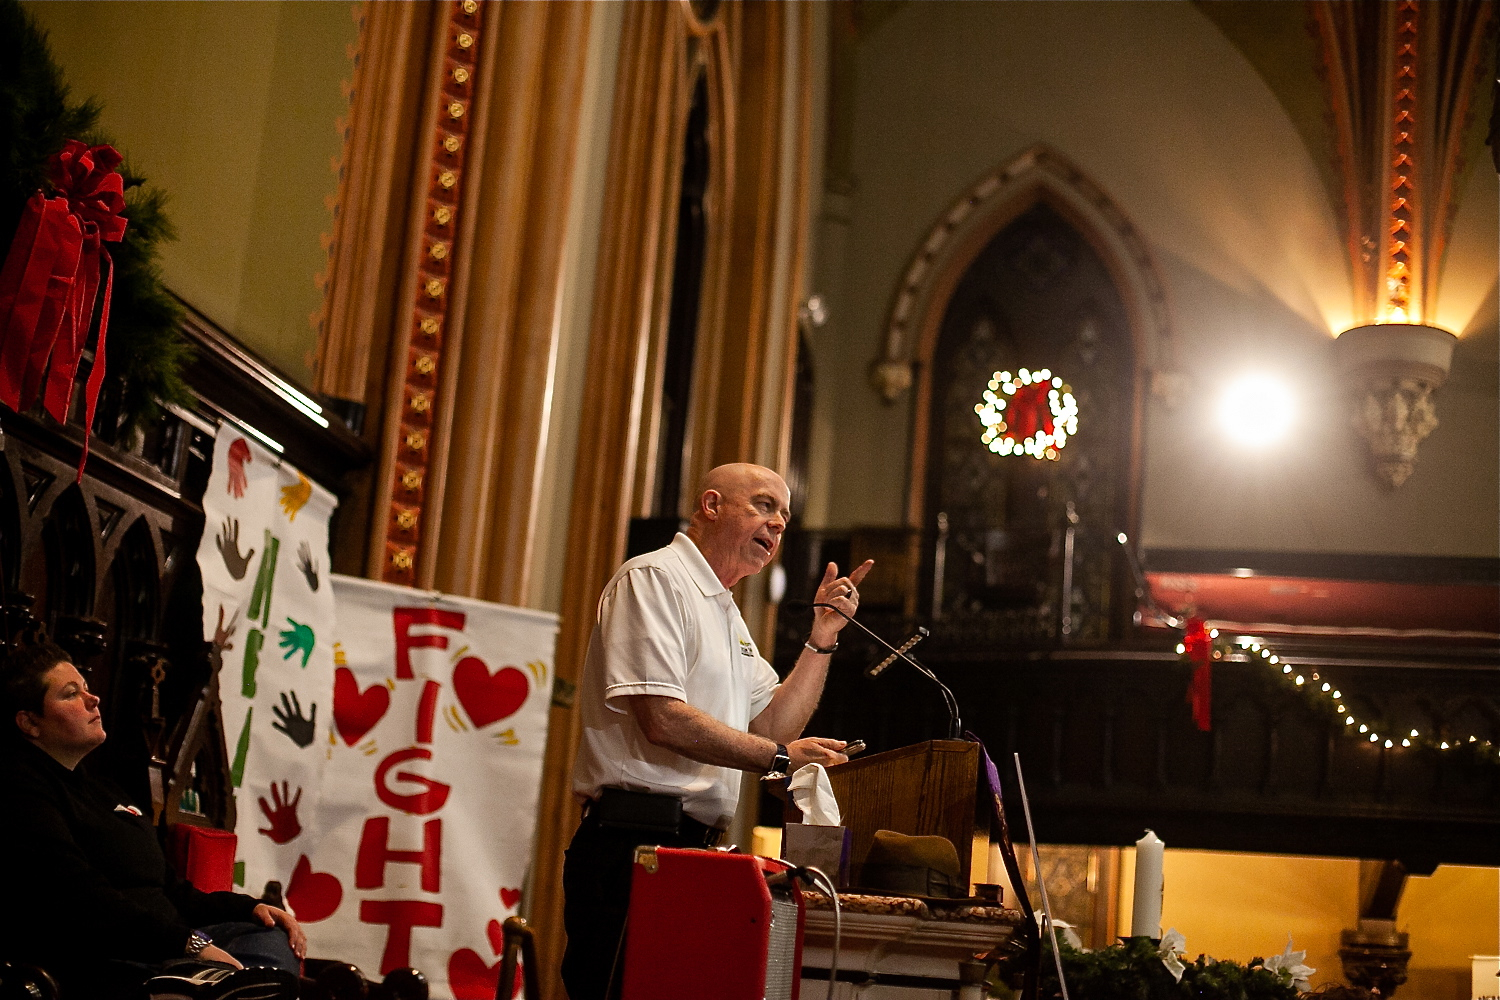 Bob McCann of the organization Sunday Breakfast Rescue Mission speaks at Homeless Memorial Day service Thursday evening at Arch Street United Methodist Church.